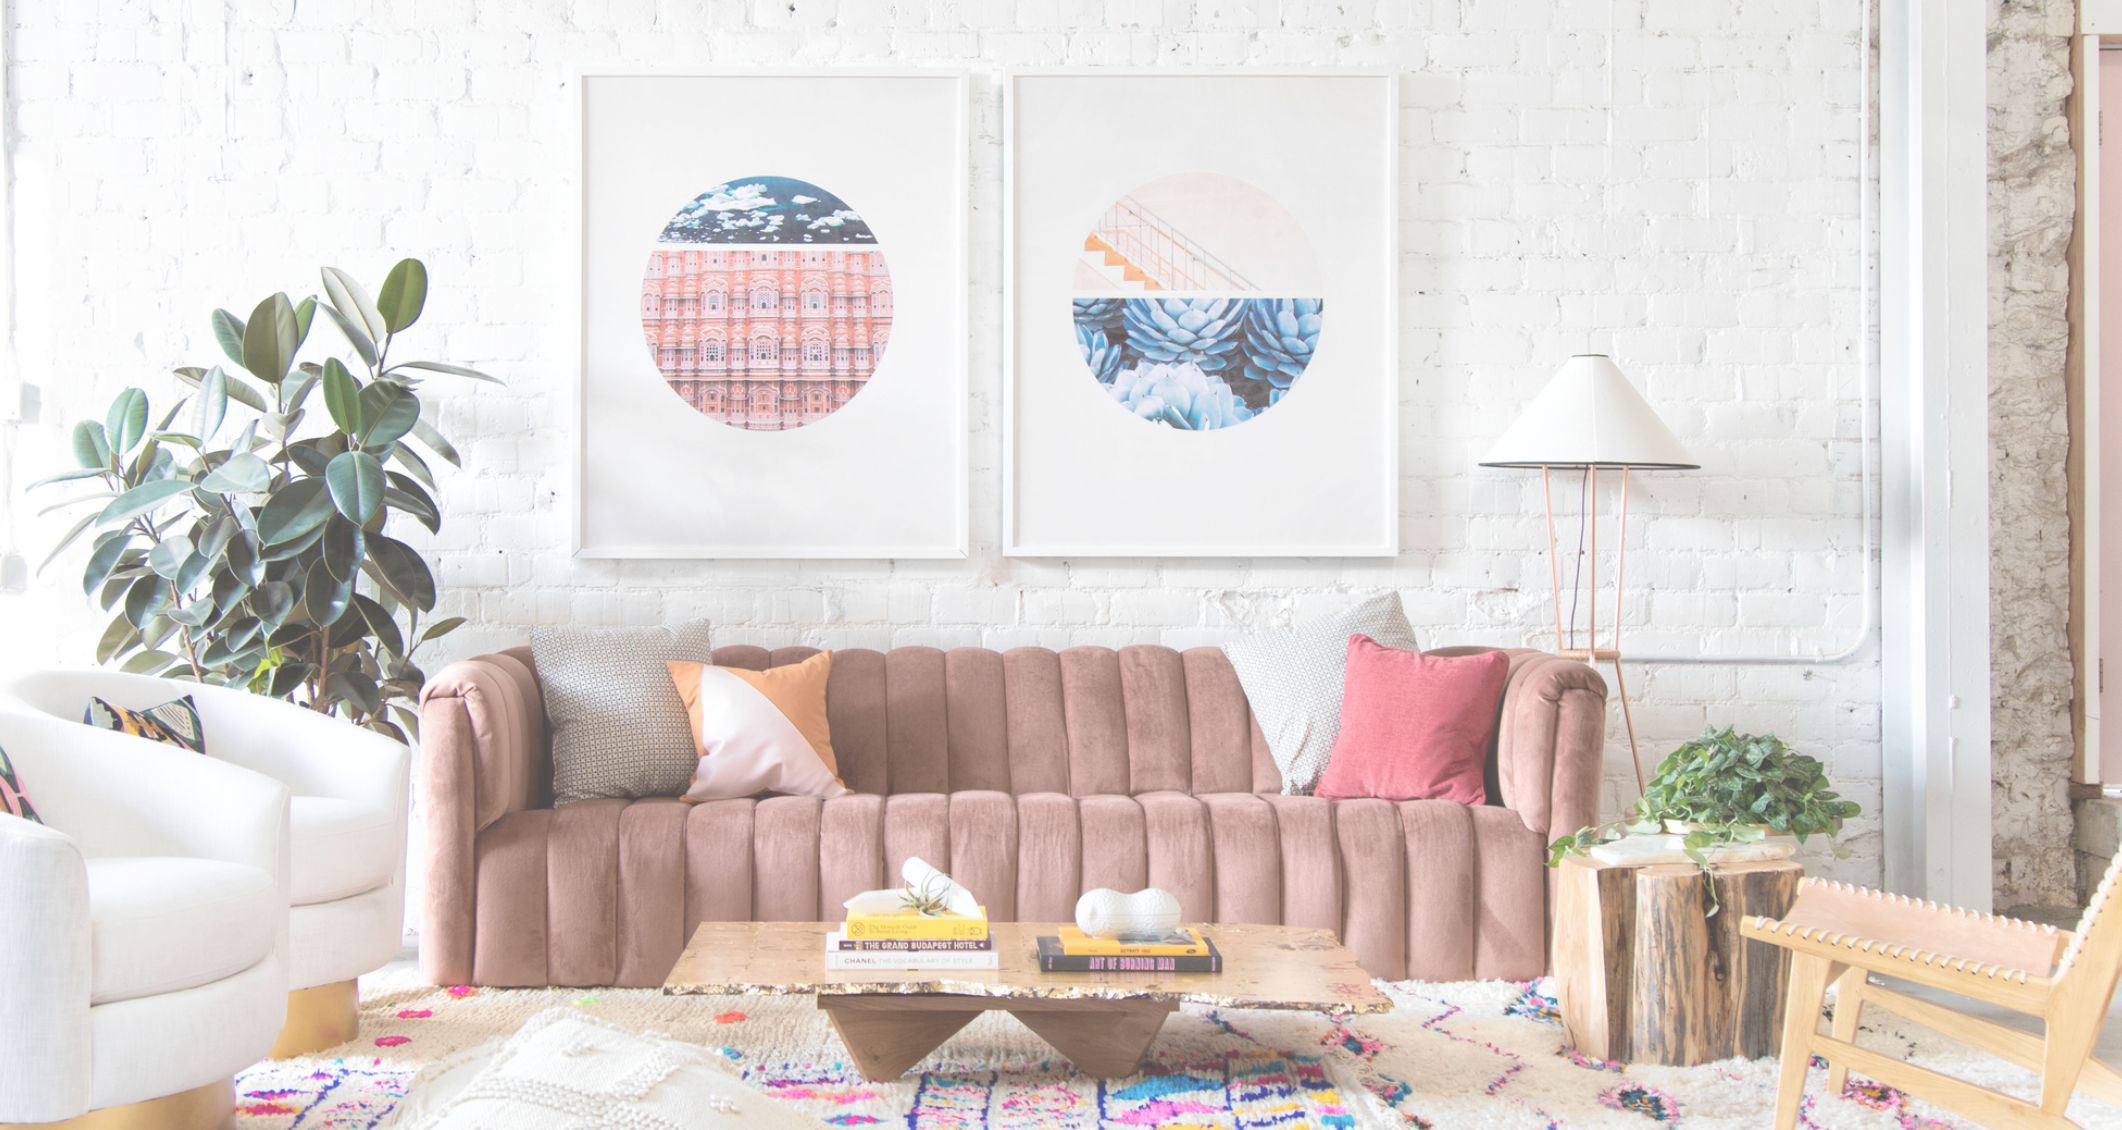 Design Sponge has a full studio tour of Light Lab online, it is a must see! This seating area is gorgeous.I want to pretend it's my house, I love it that much. http://www.designsponge.com/2016/08/studio-tour-light-lab.html